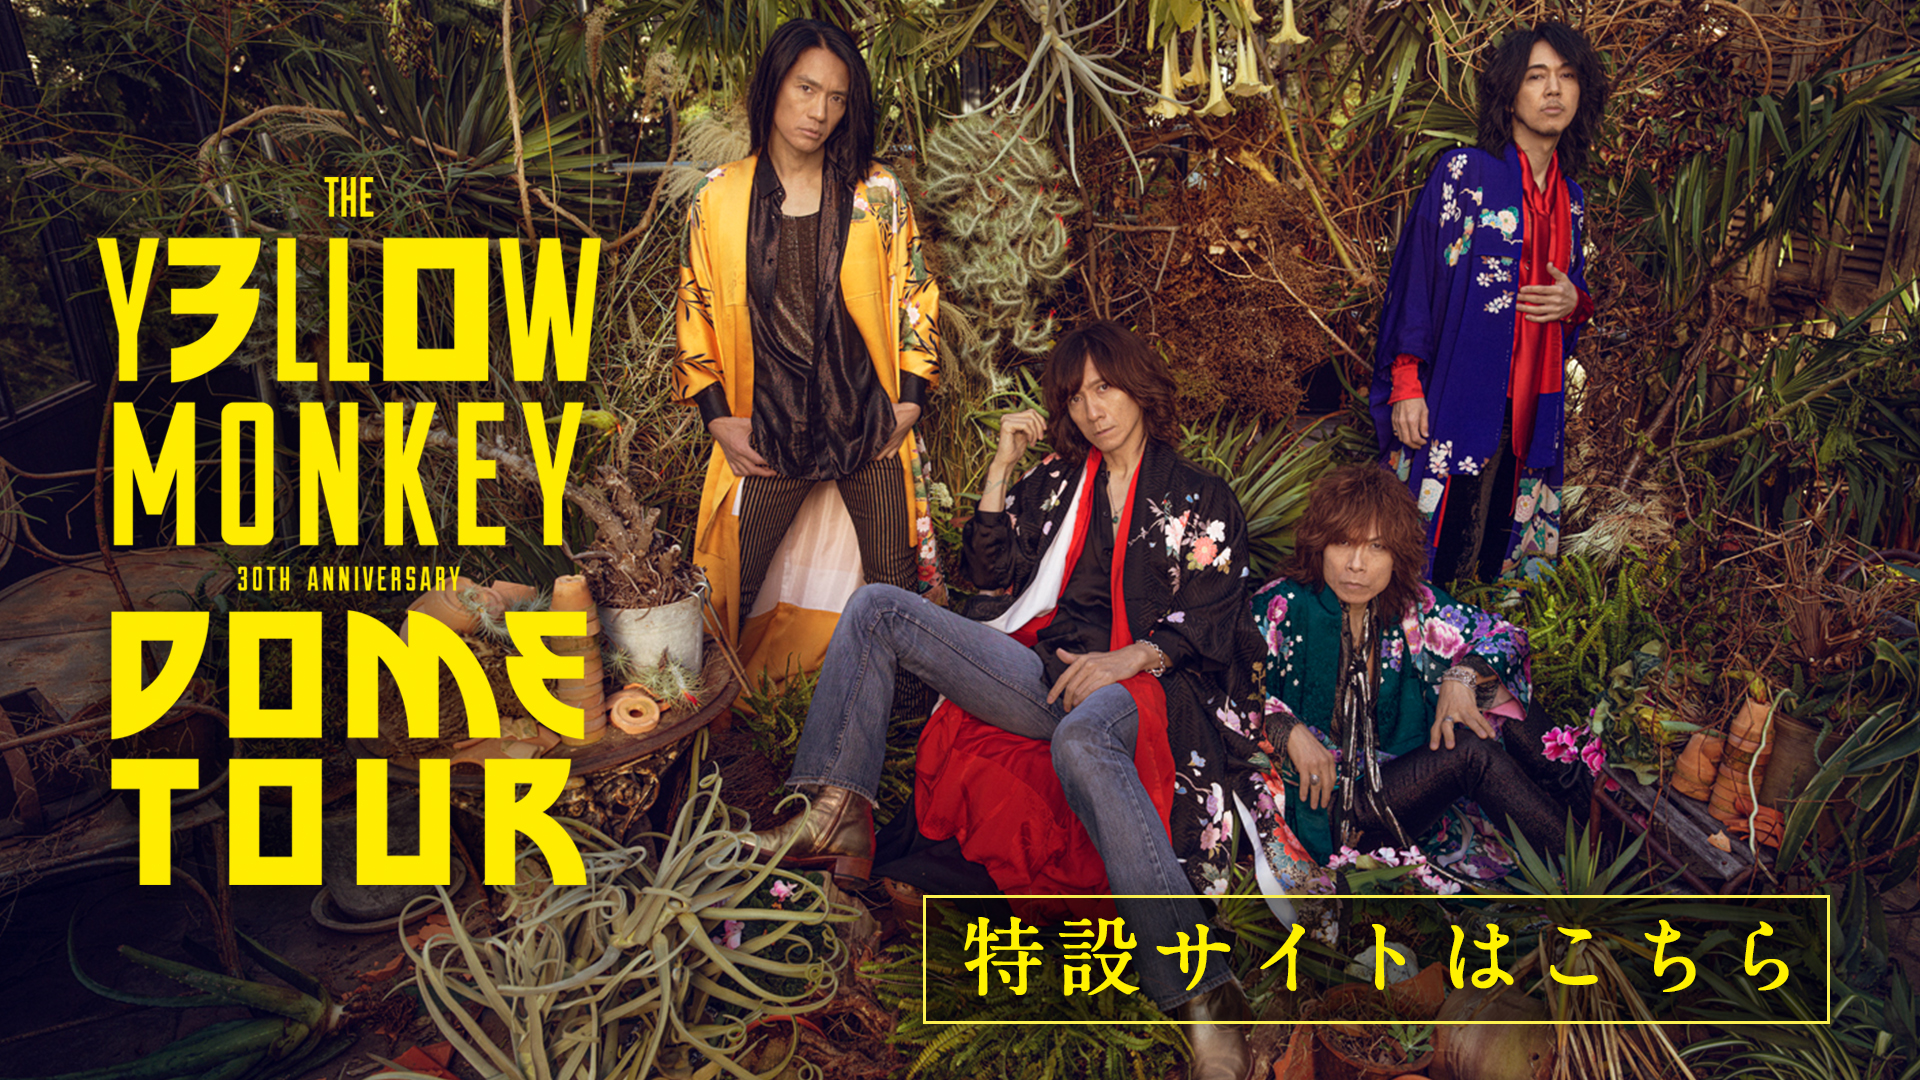 THE YELLOW MONKEY 30th Anniversary DOME TOUR